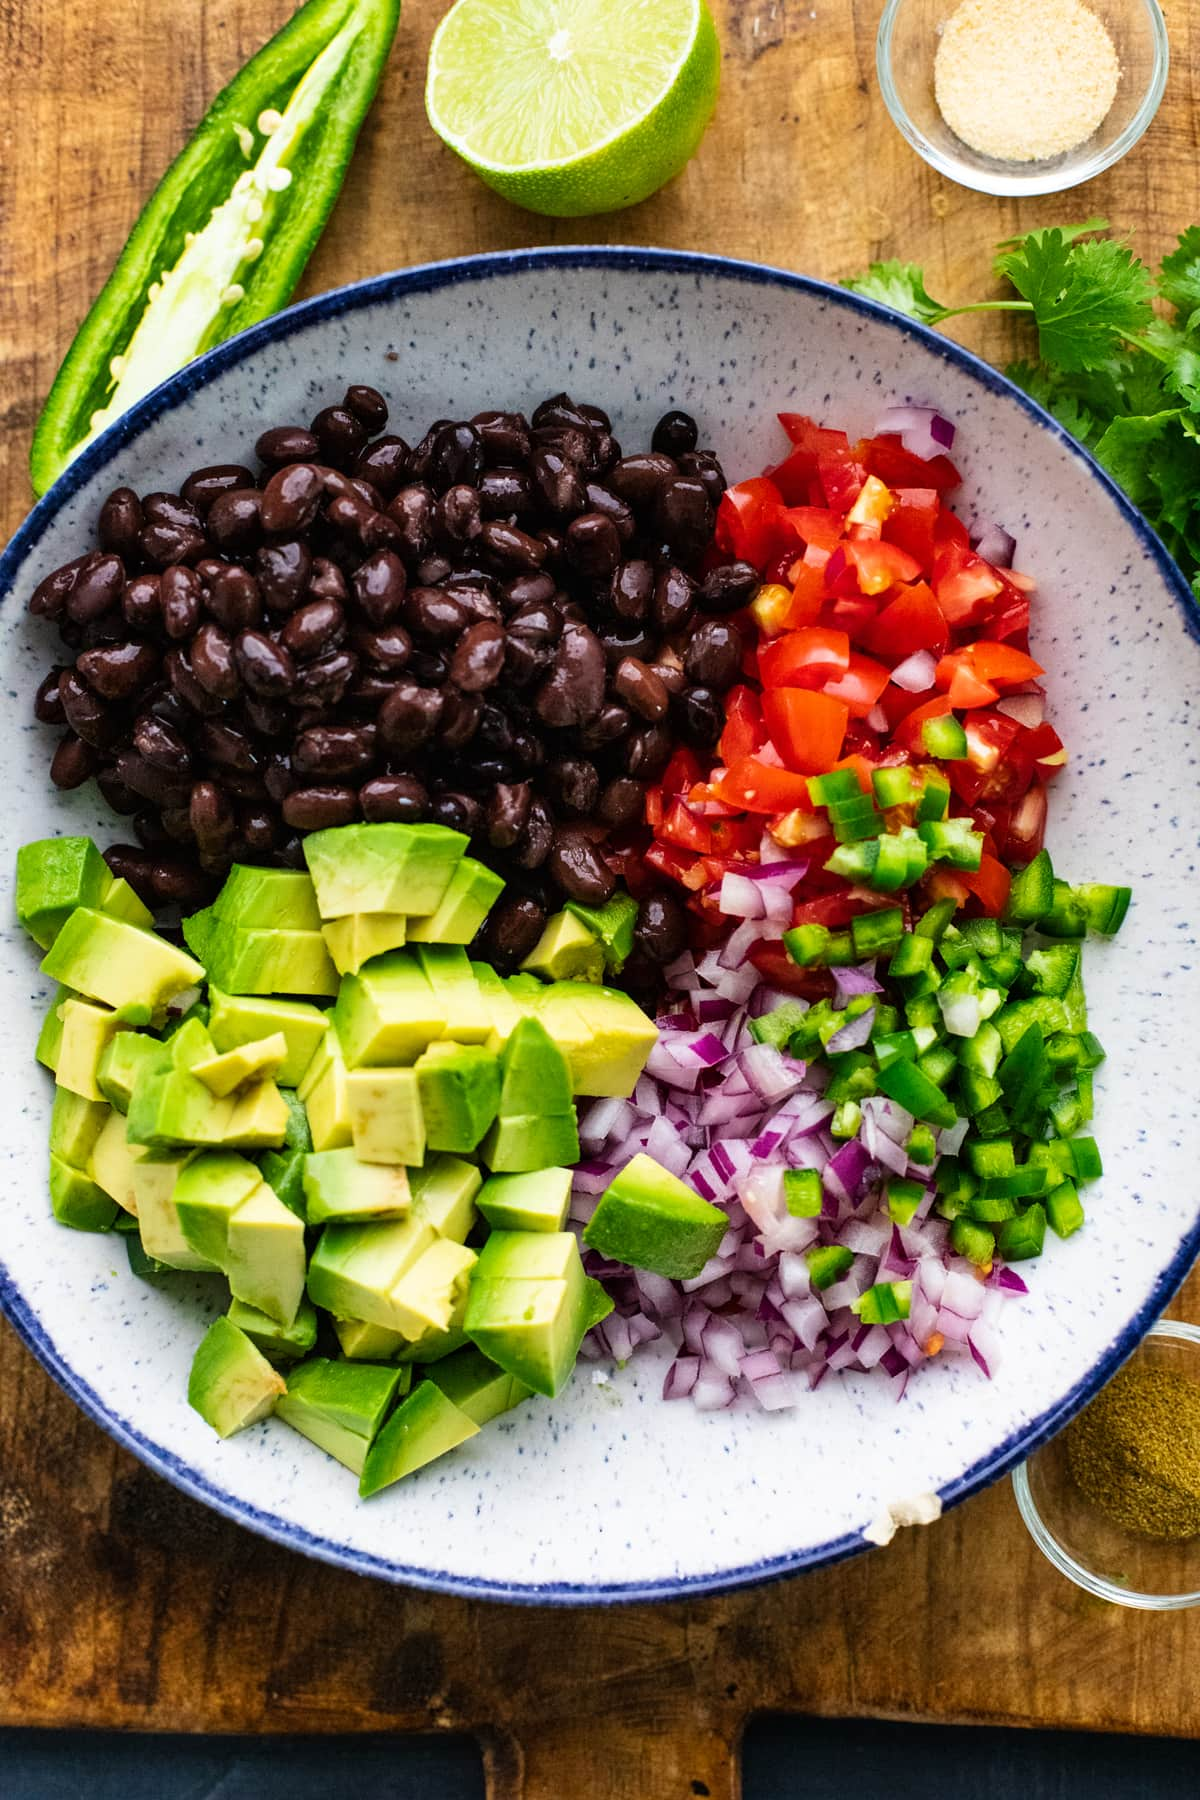 Bowl with black bean salsa ingredients in it on wooden cutting board.